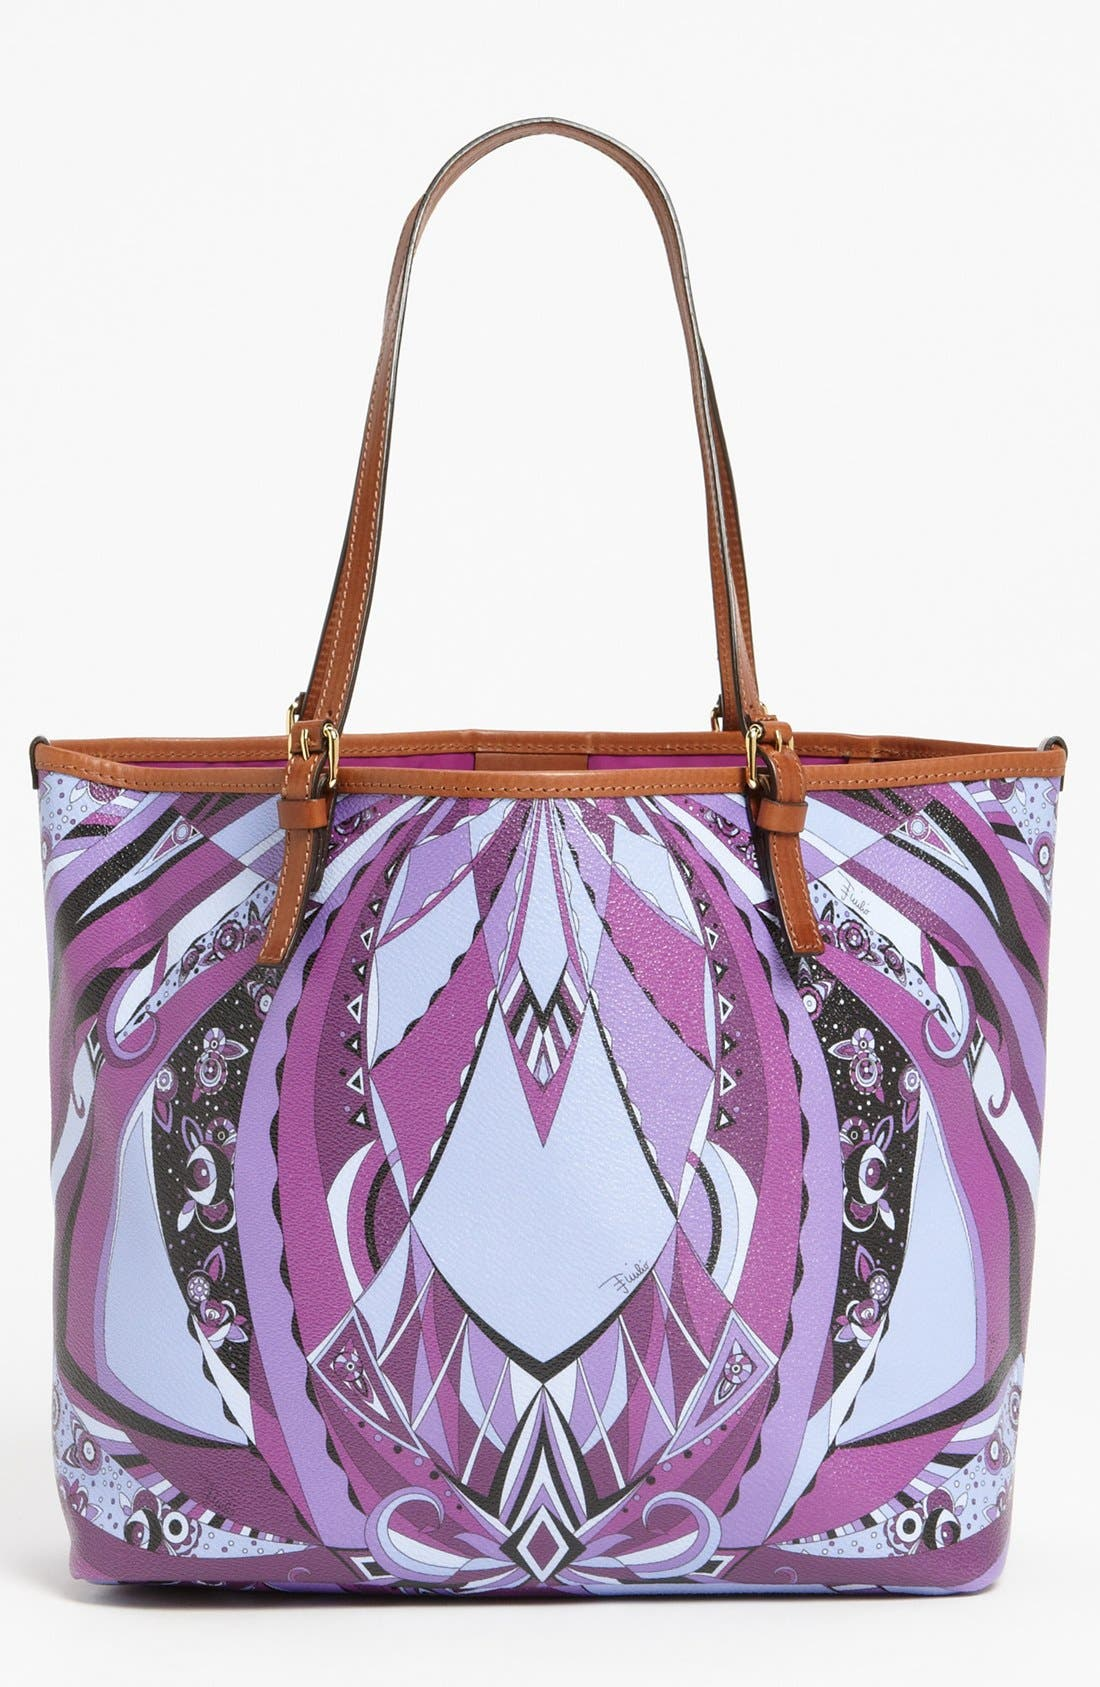 Alternate Image 1 Selected - Emilio Pucci 'Chicago Piazzato - Medium' Tote